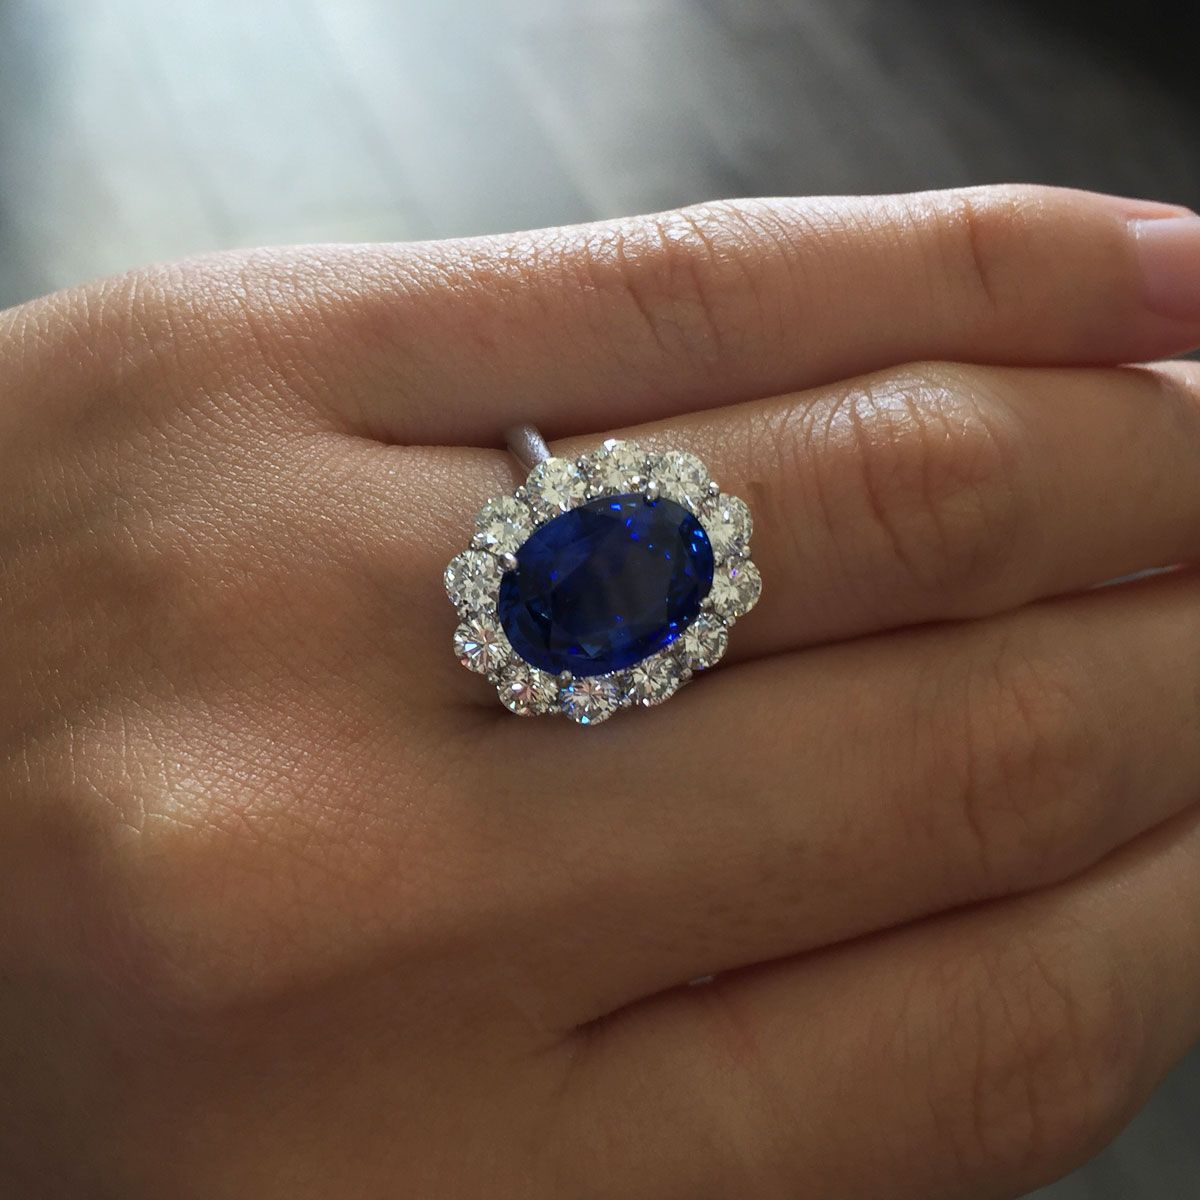 large hatton sapphire ring dublin wedding of buy garden philippines engagement size rings blue